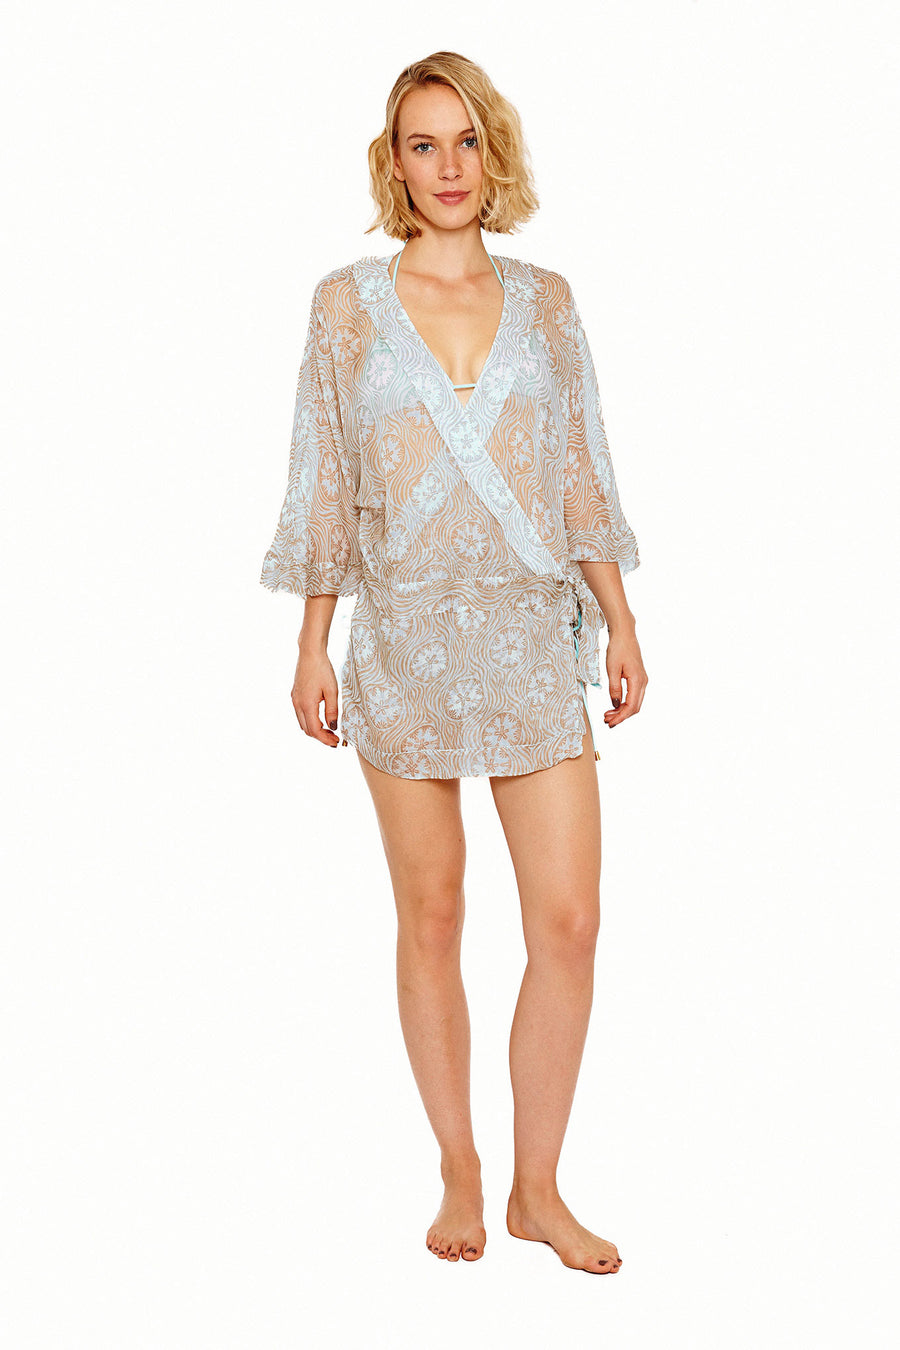 Lotty B Kimono in Silk Chiffon (Sand Dollar Repeat Taupe)